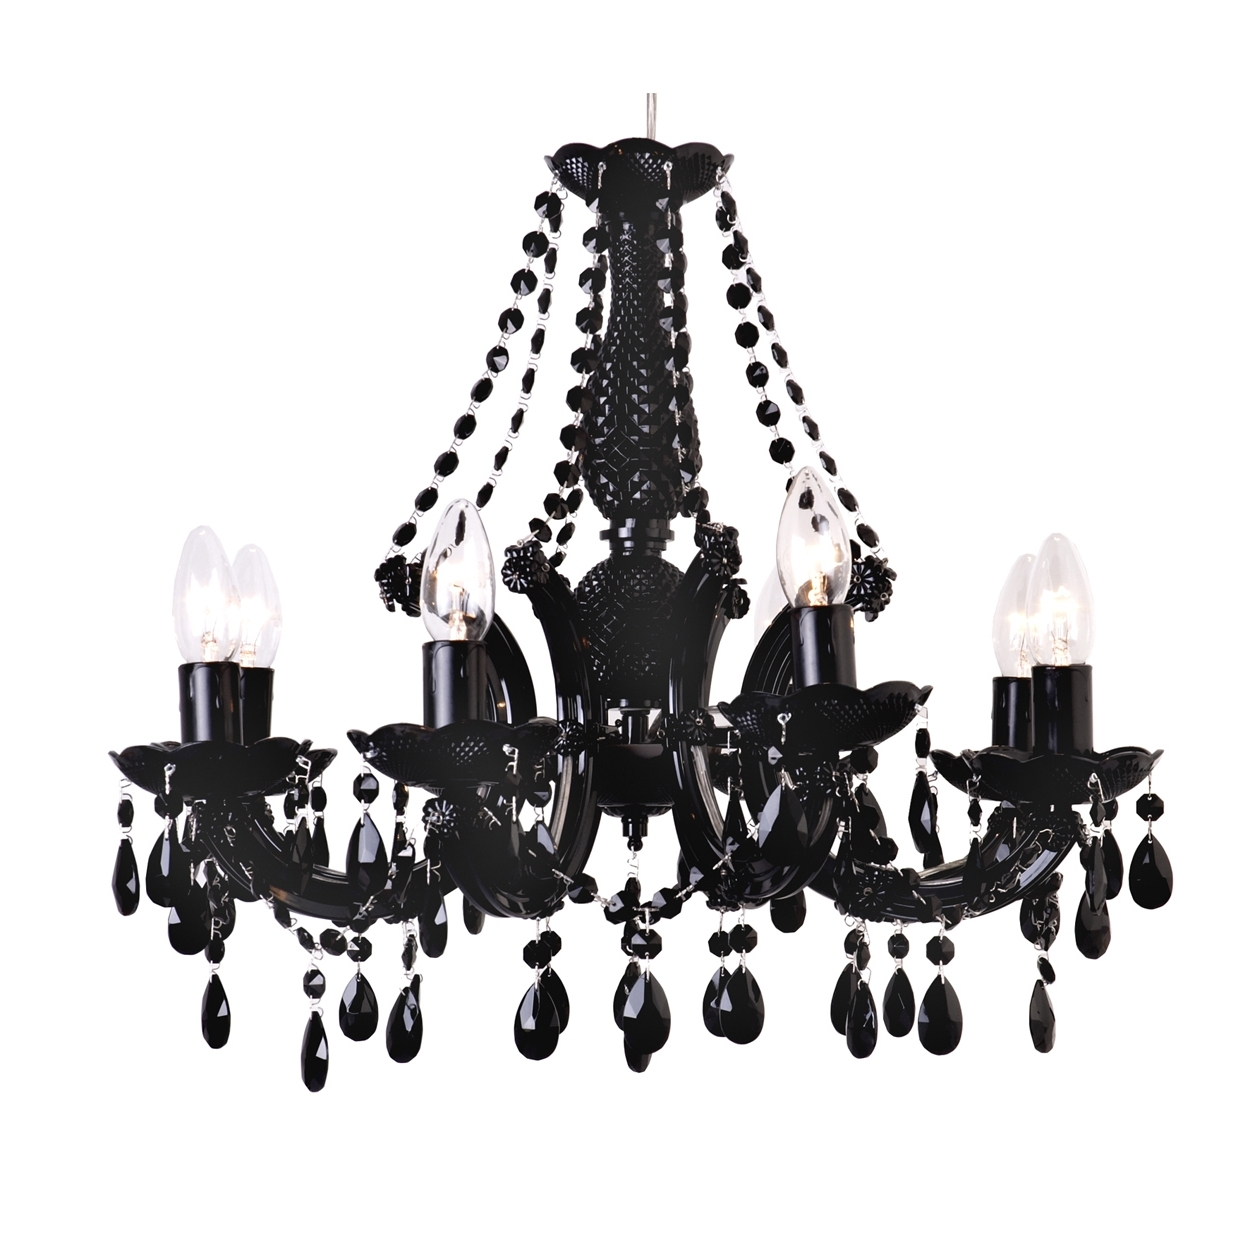 Black Glass Chandeliers Within Best And Newest Black Crystal Lighting (View 15 of 15)